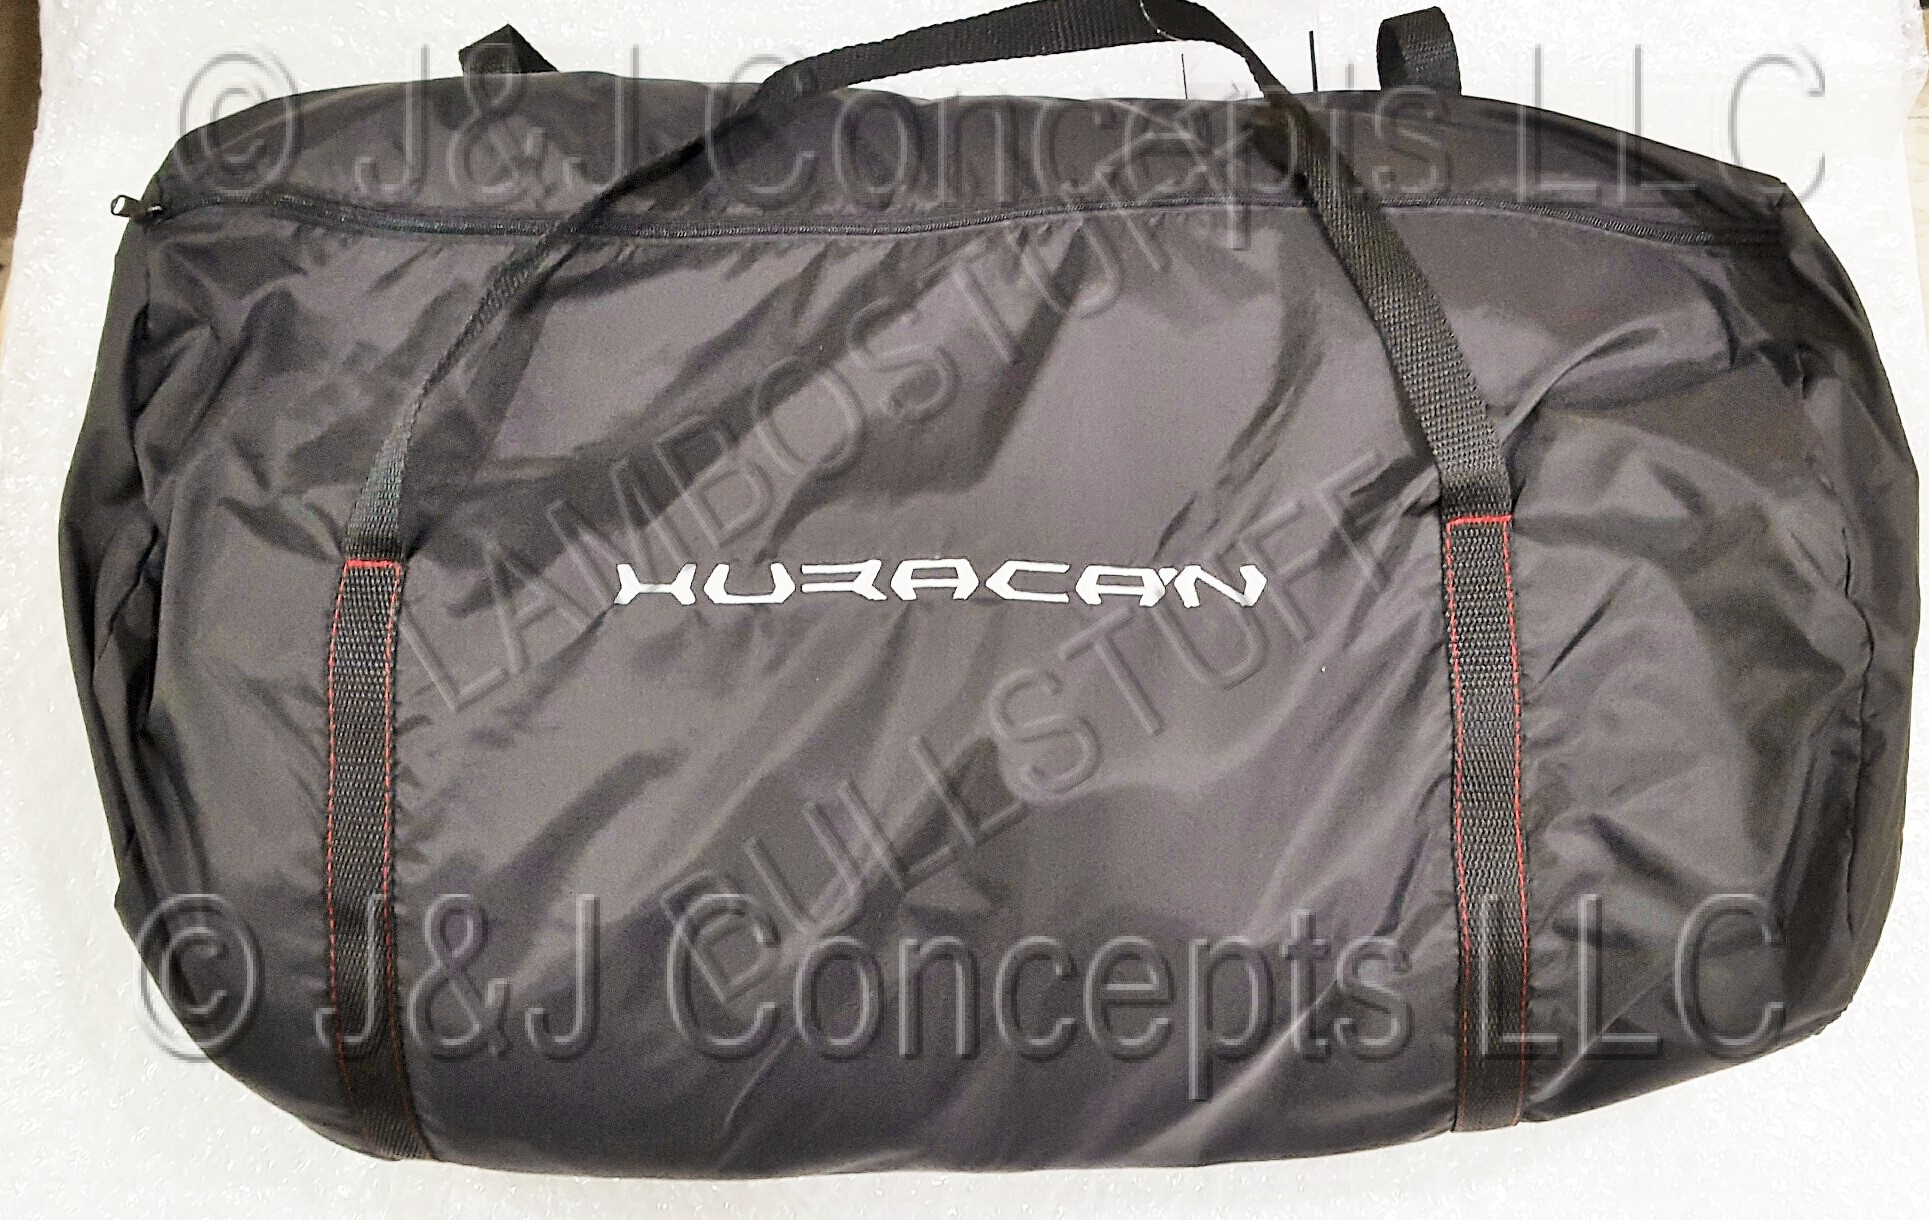 HURACAN CAR COVER YELLOW STITCHING INDOOR